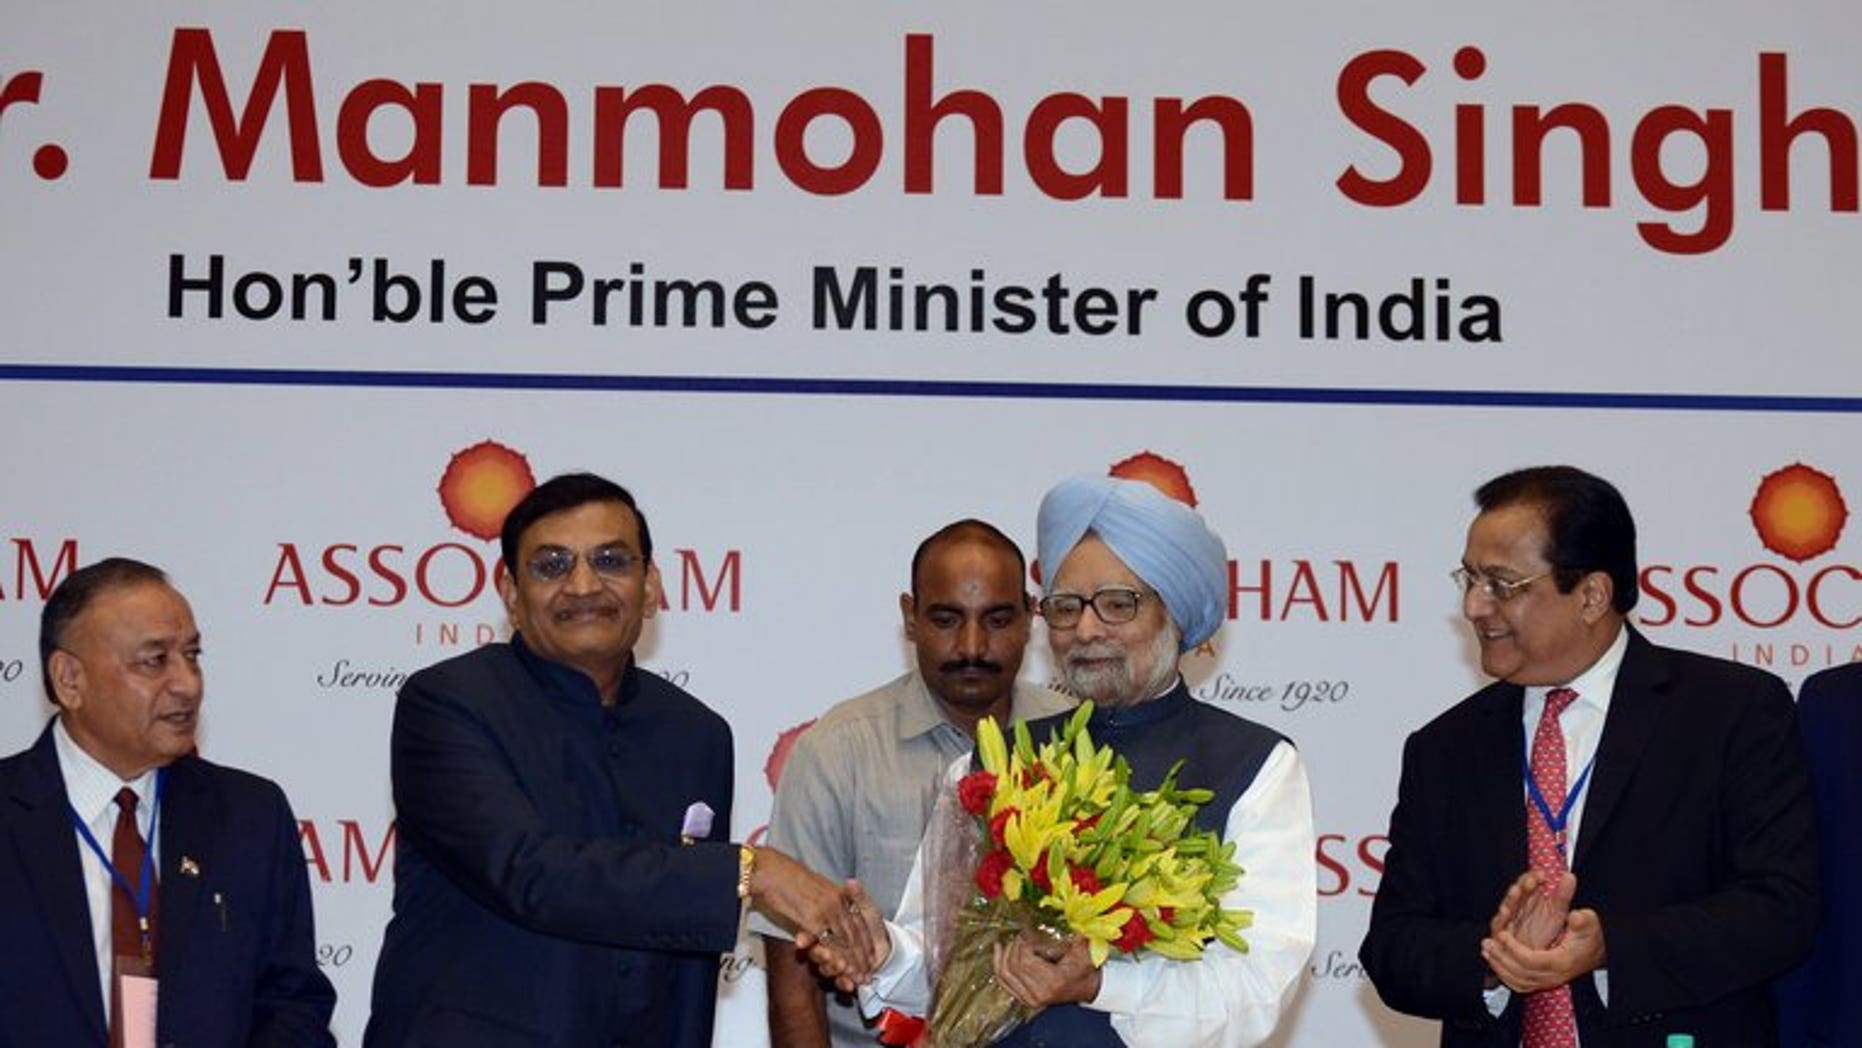 """Manmohan Singh (centre right) at a meeting of industry leaders in New Delhi on Friday. India's Prime Minister urged investors to """"remain optimistic"""", while acknowledging growth in 2013-14 is likely to fall short of the government's 6.5% target."""